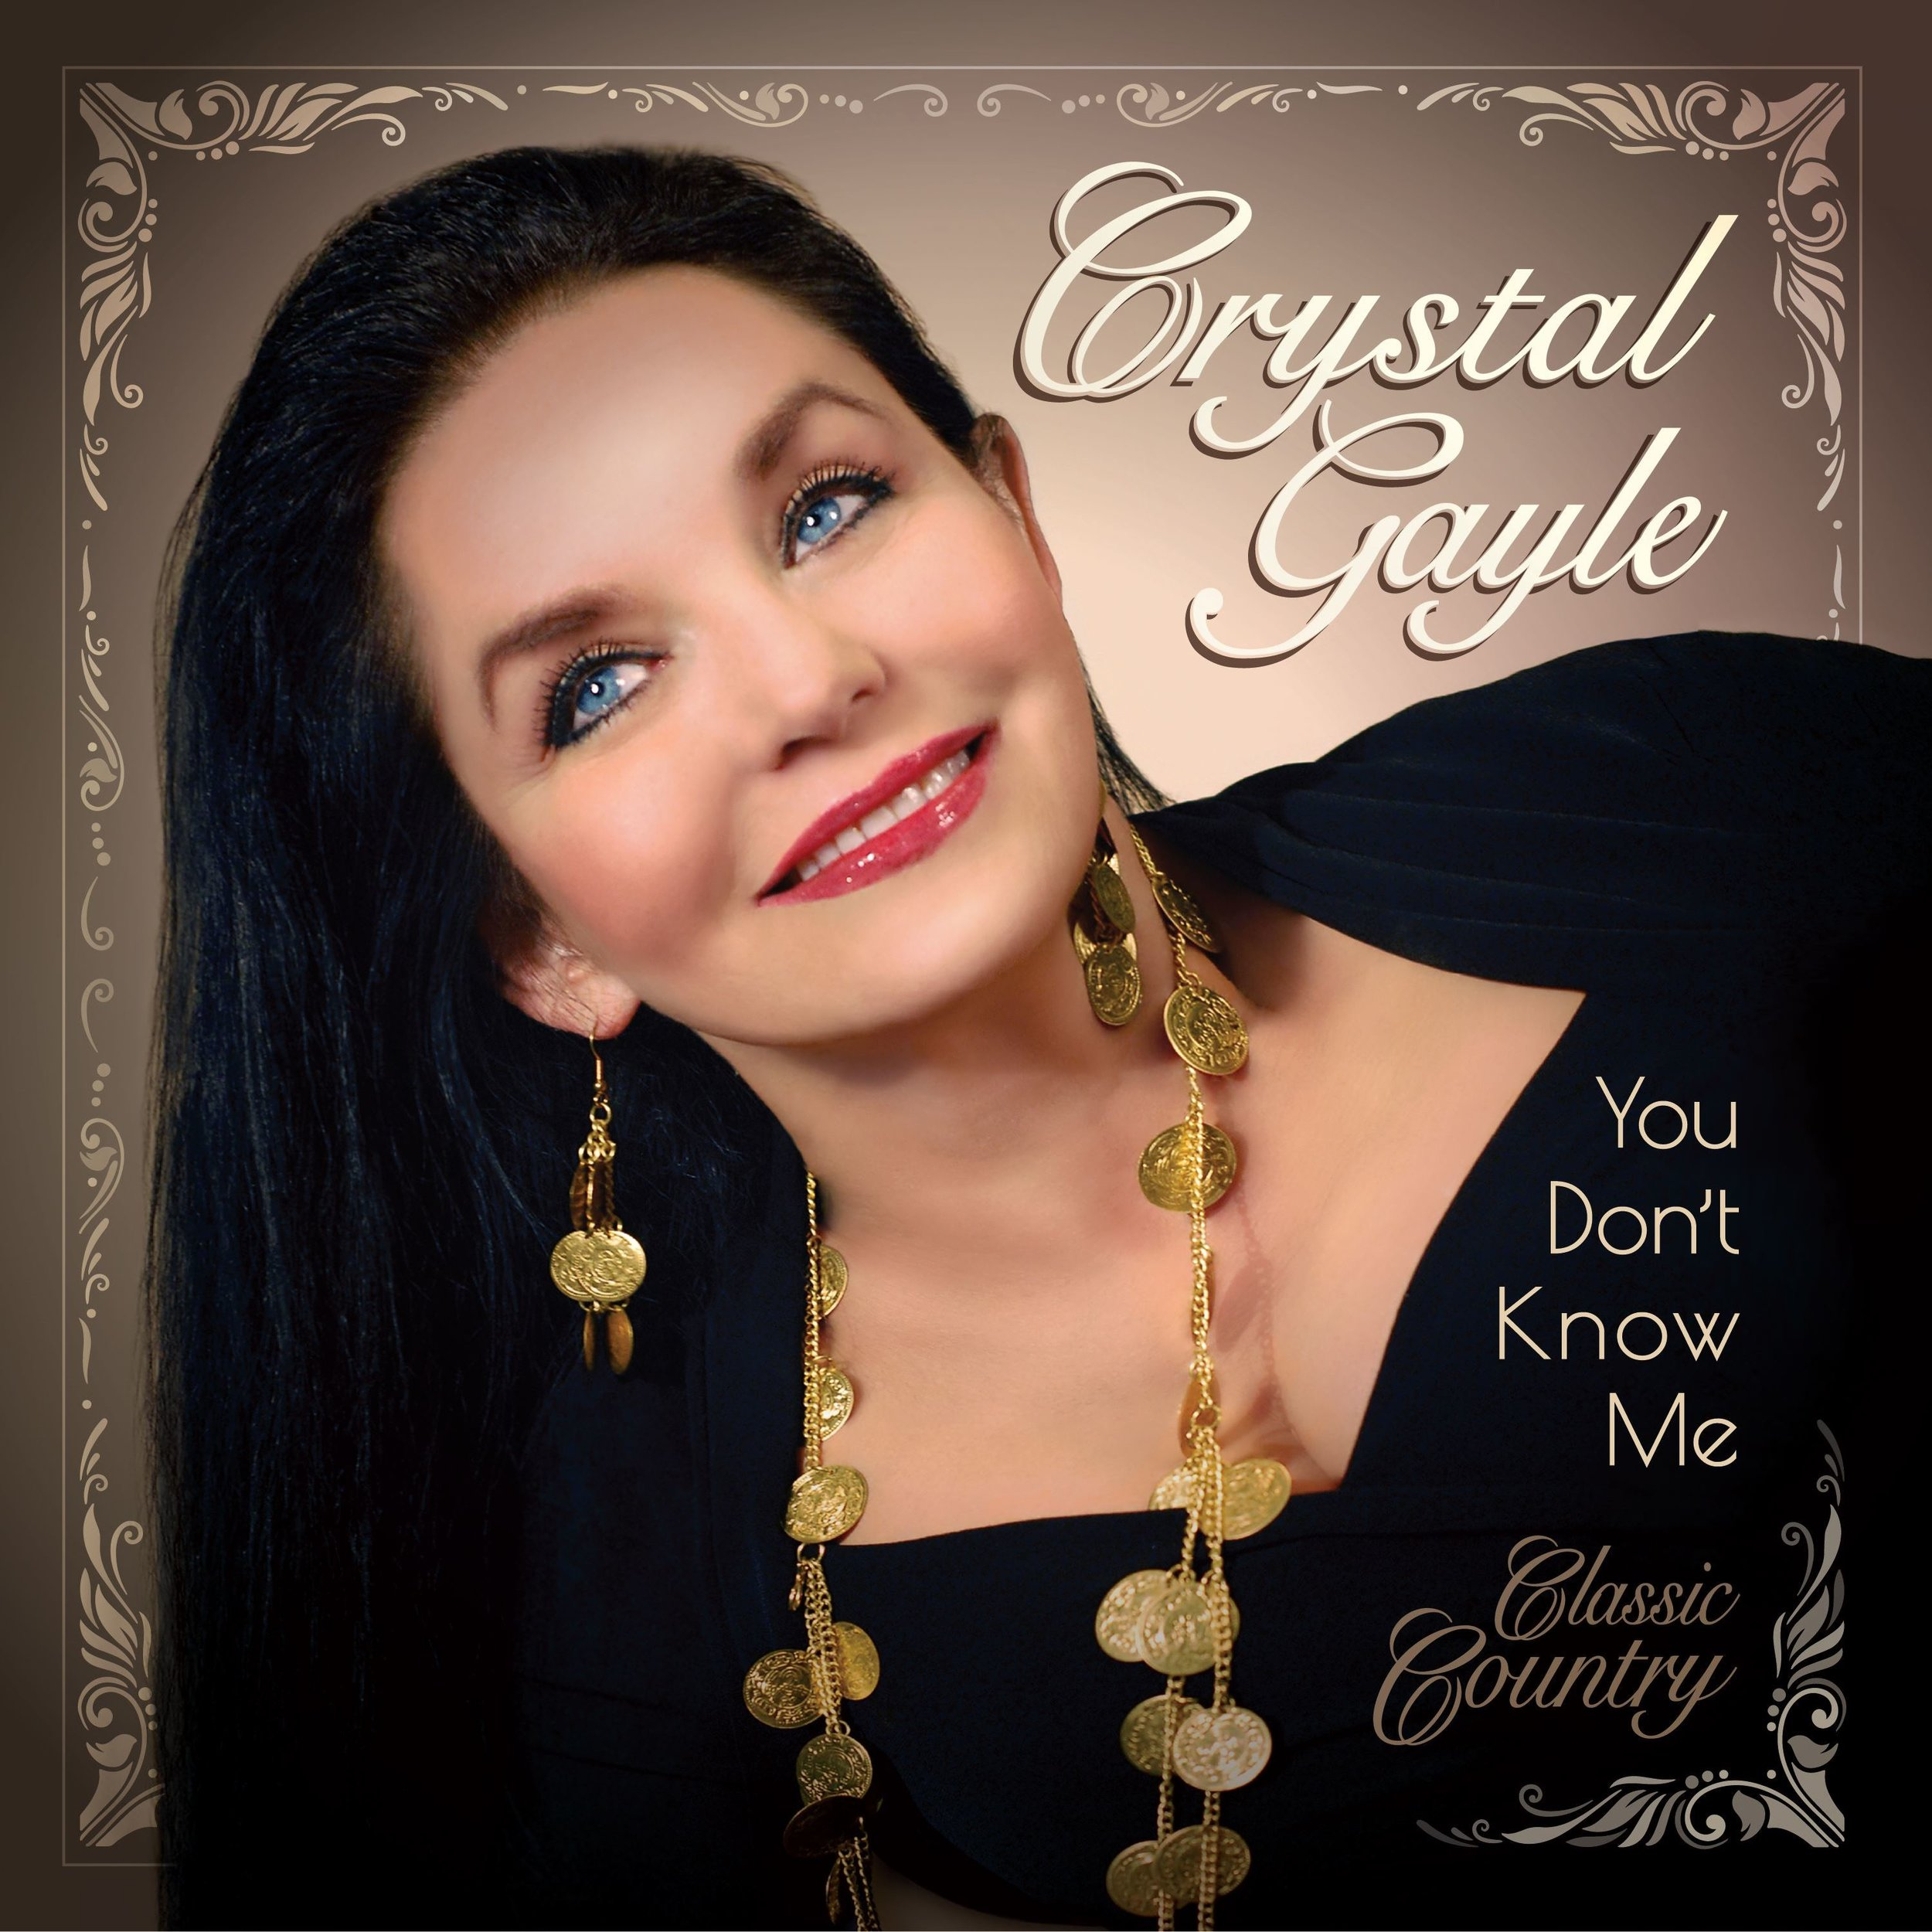 Crystal Gayle releases her first new album in 16 years!